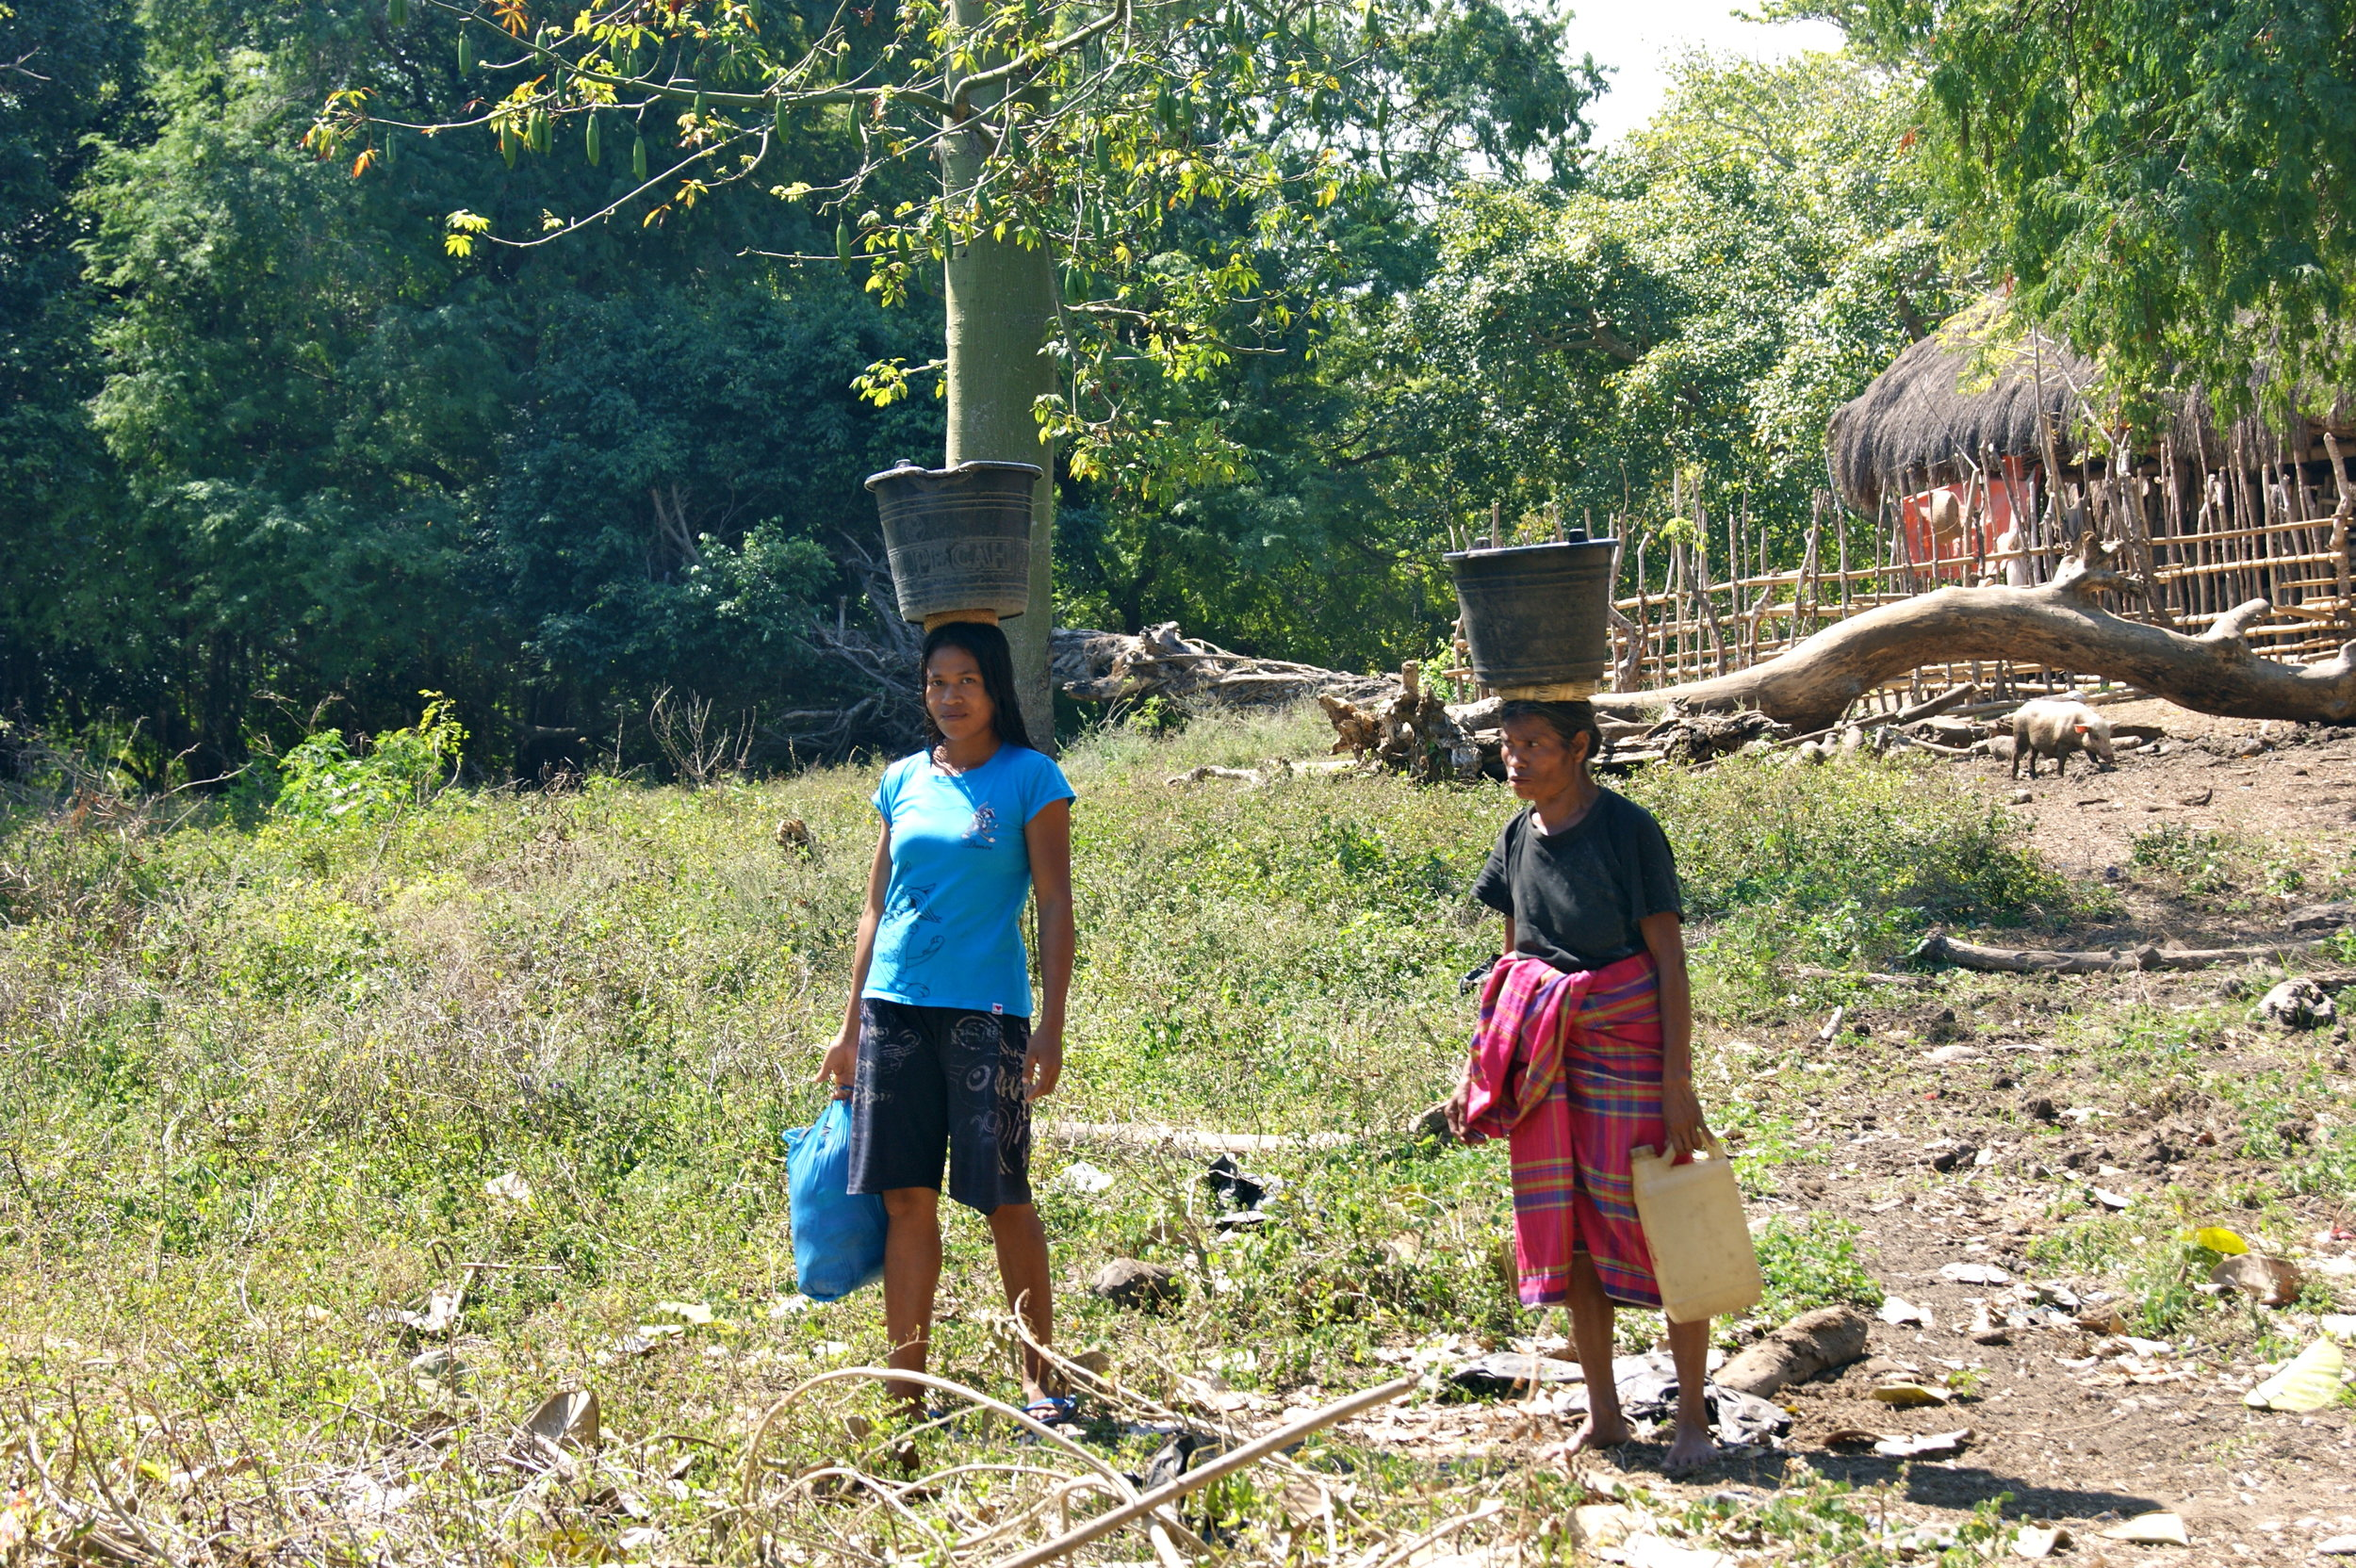 Women carrying buckets of water before the Sumba Foundation helped them get access to water in Hobajaingi Village in 2013.